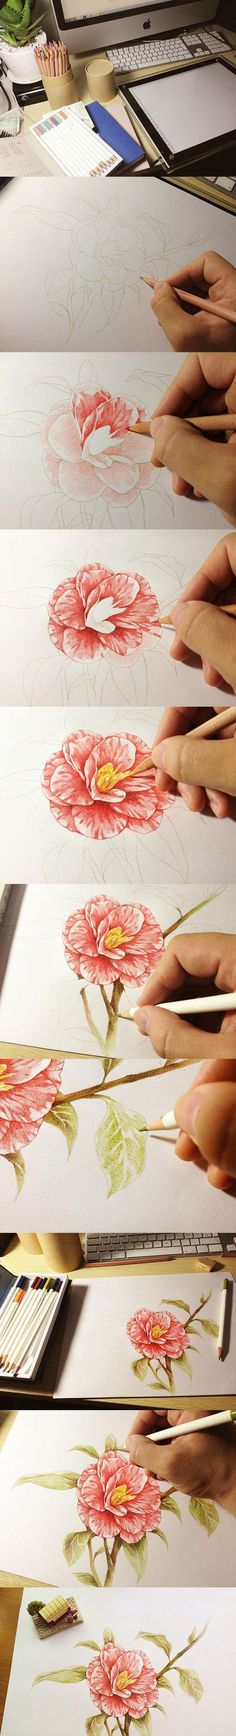 colour a flower step by step